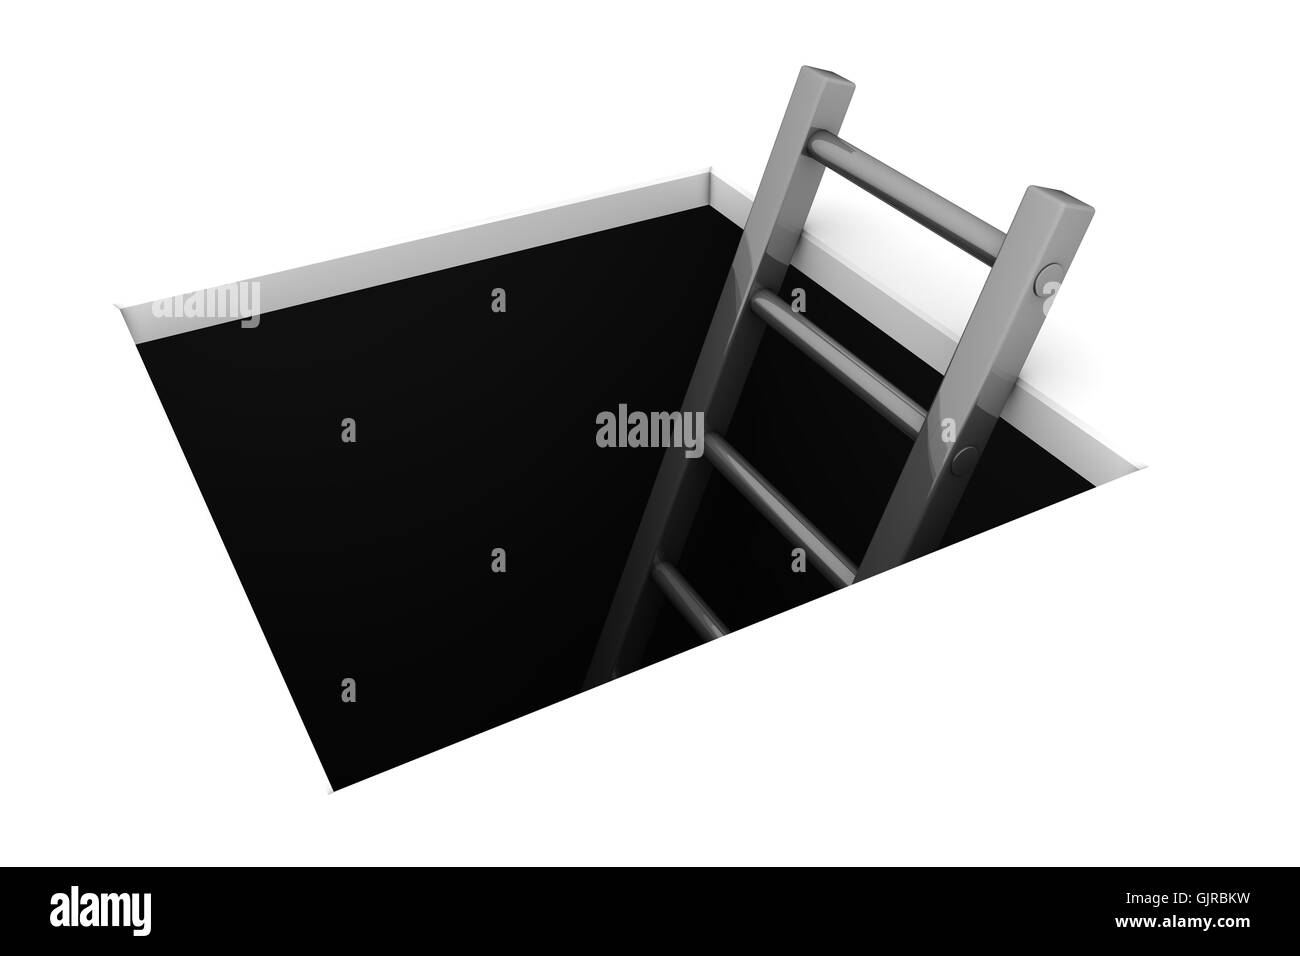 Climb out of the Hole - Shiny Grey Ladder - Stock Image